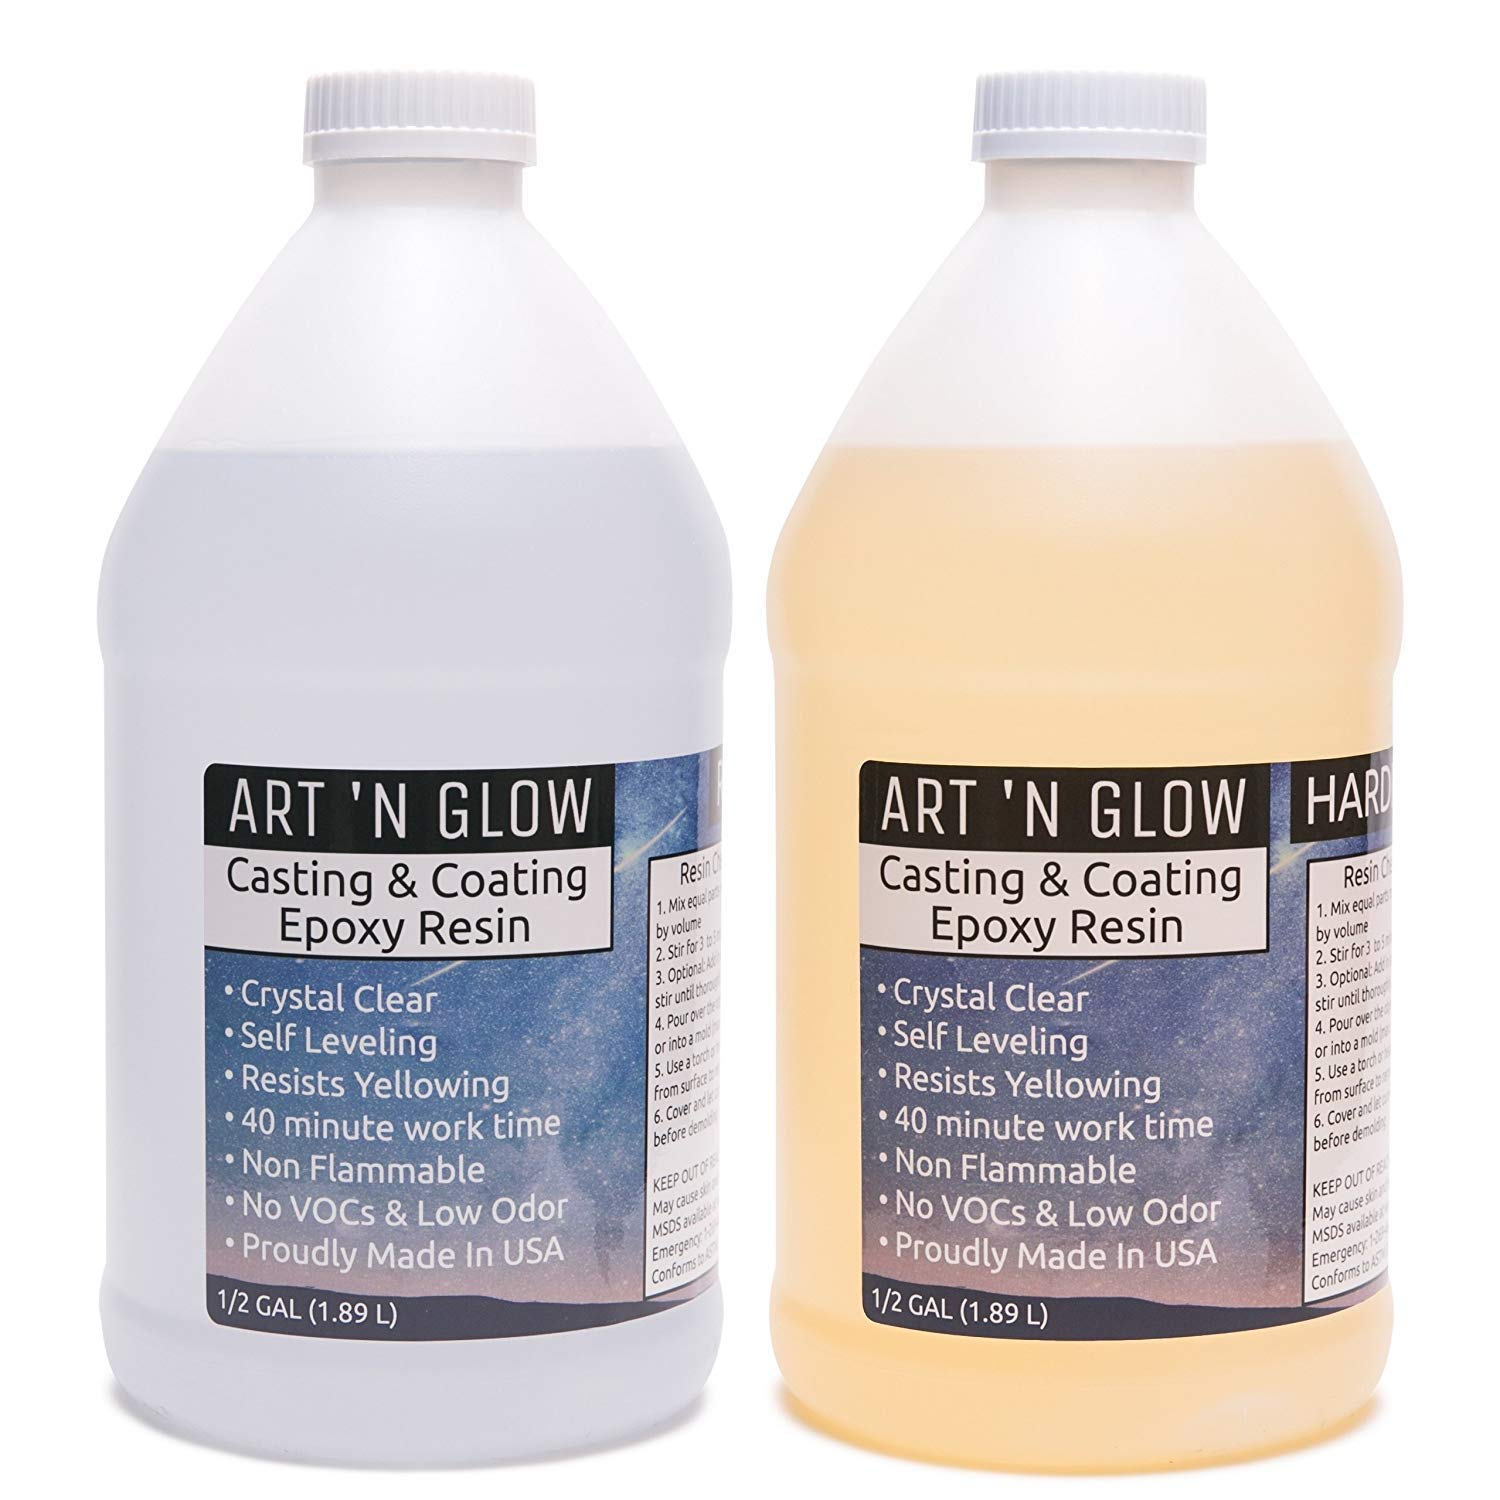 Art 'N Glow Clear Casting and Coating- 1 Gallon Kit